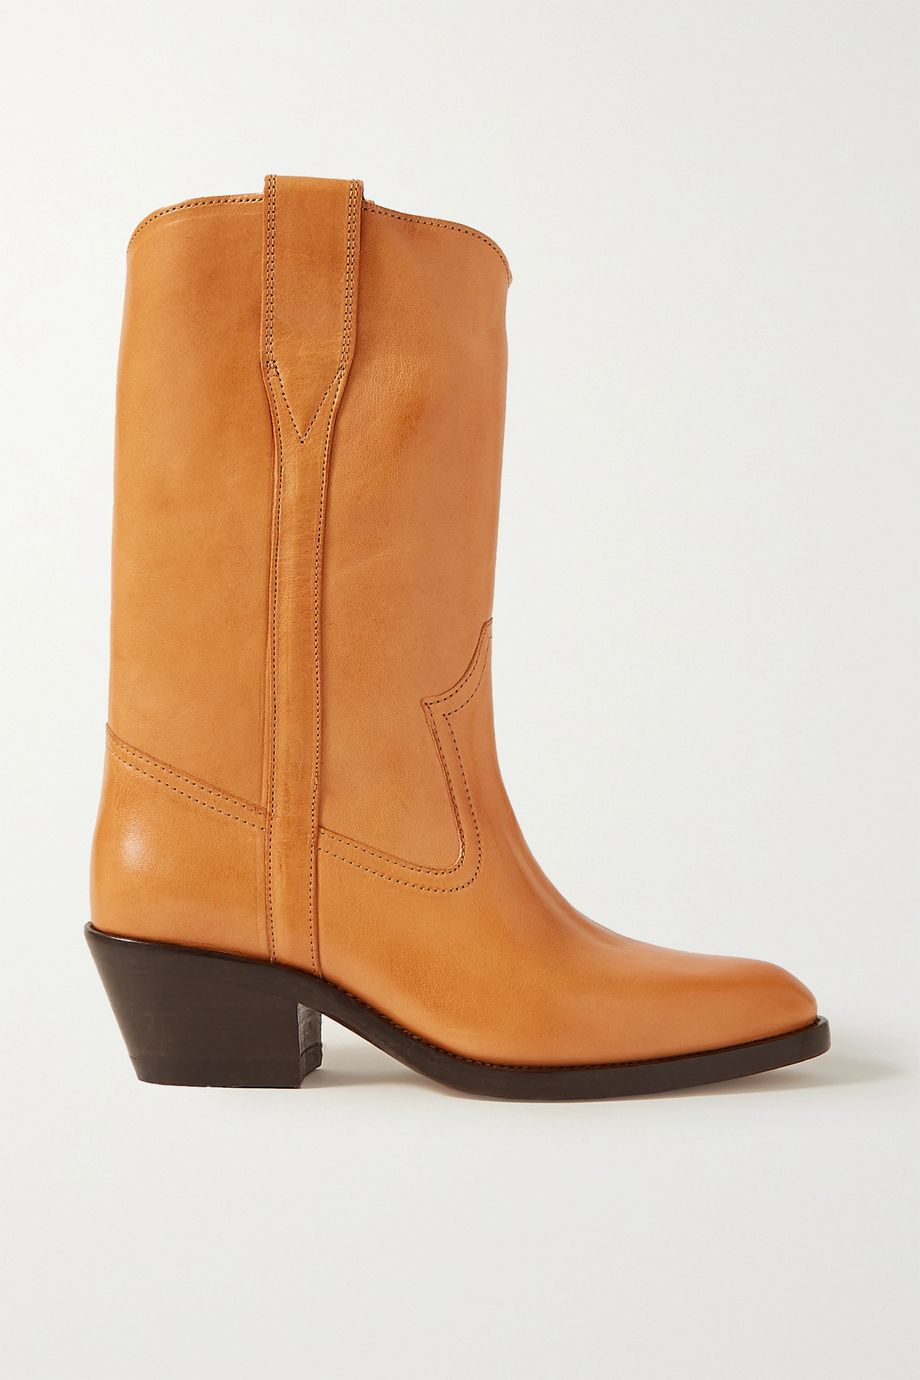 Isabel Marant Danta leather boots